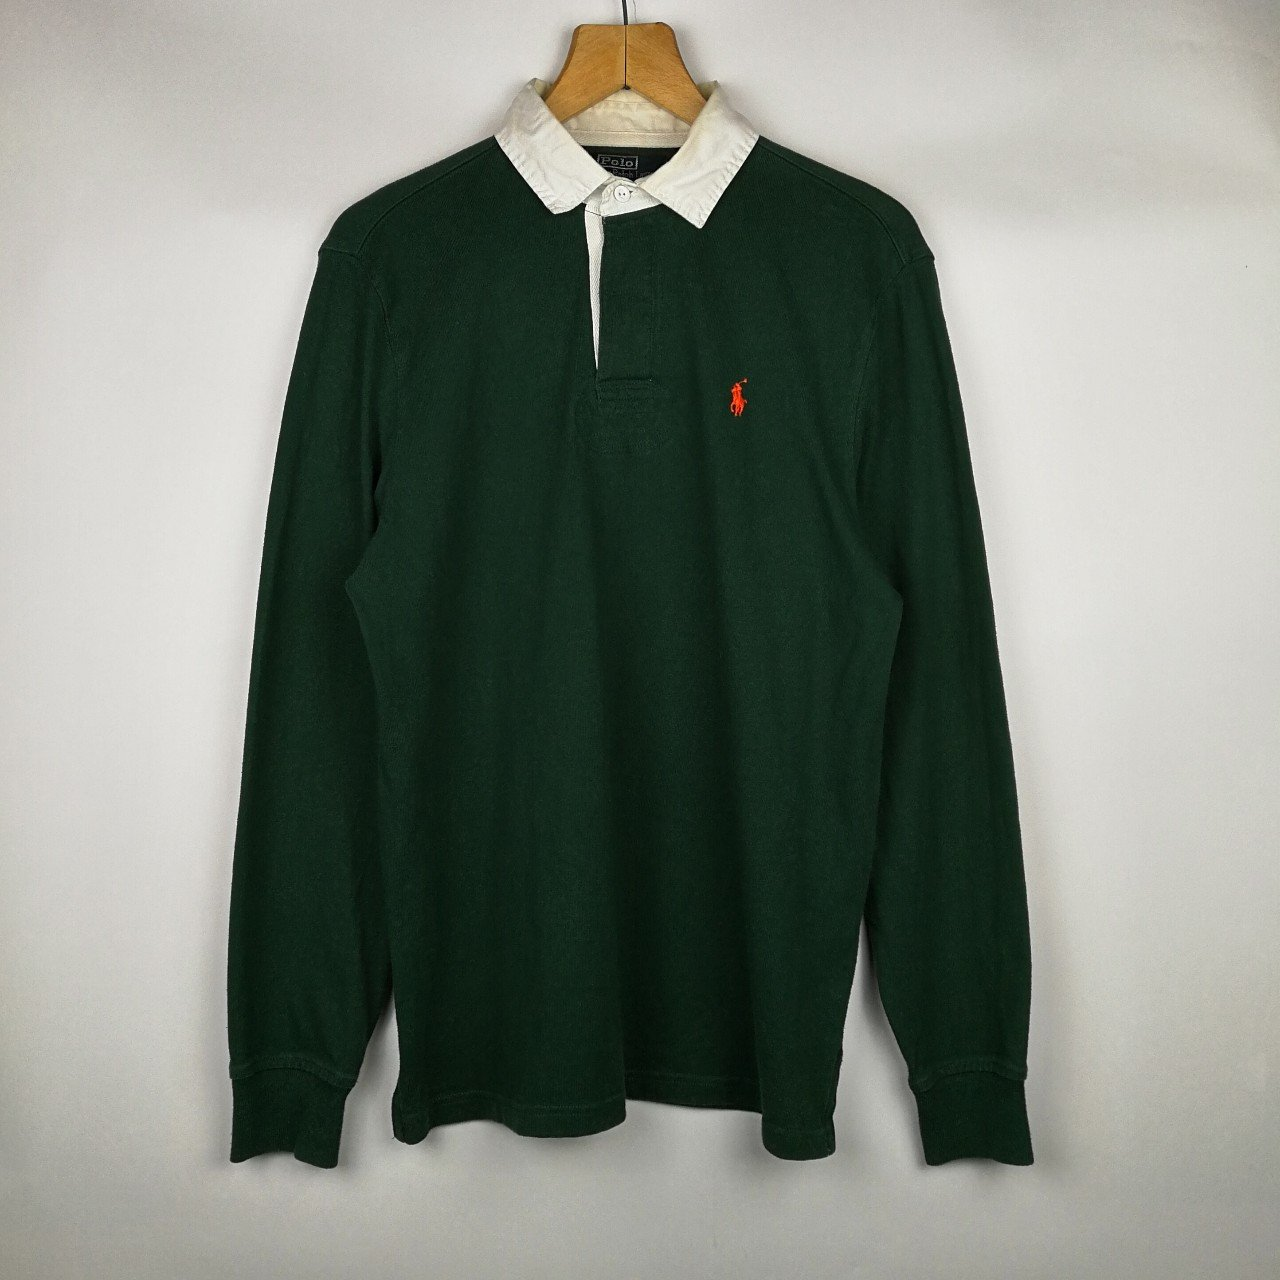 d69fbd9f @pacifye. 5 months ago. Bedford, Bedford, United Kingdom. VINTAGE FOREST  GREEN POLO RALPH LAUREN L/S RUGBY SHIRT ...